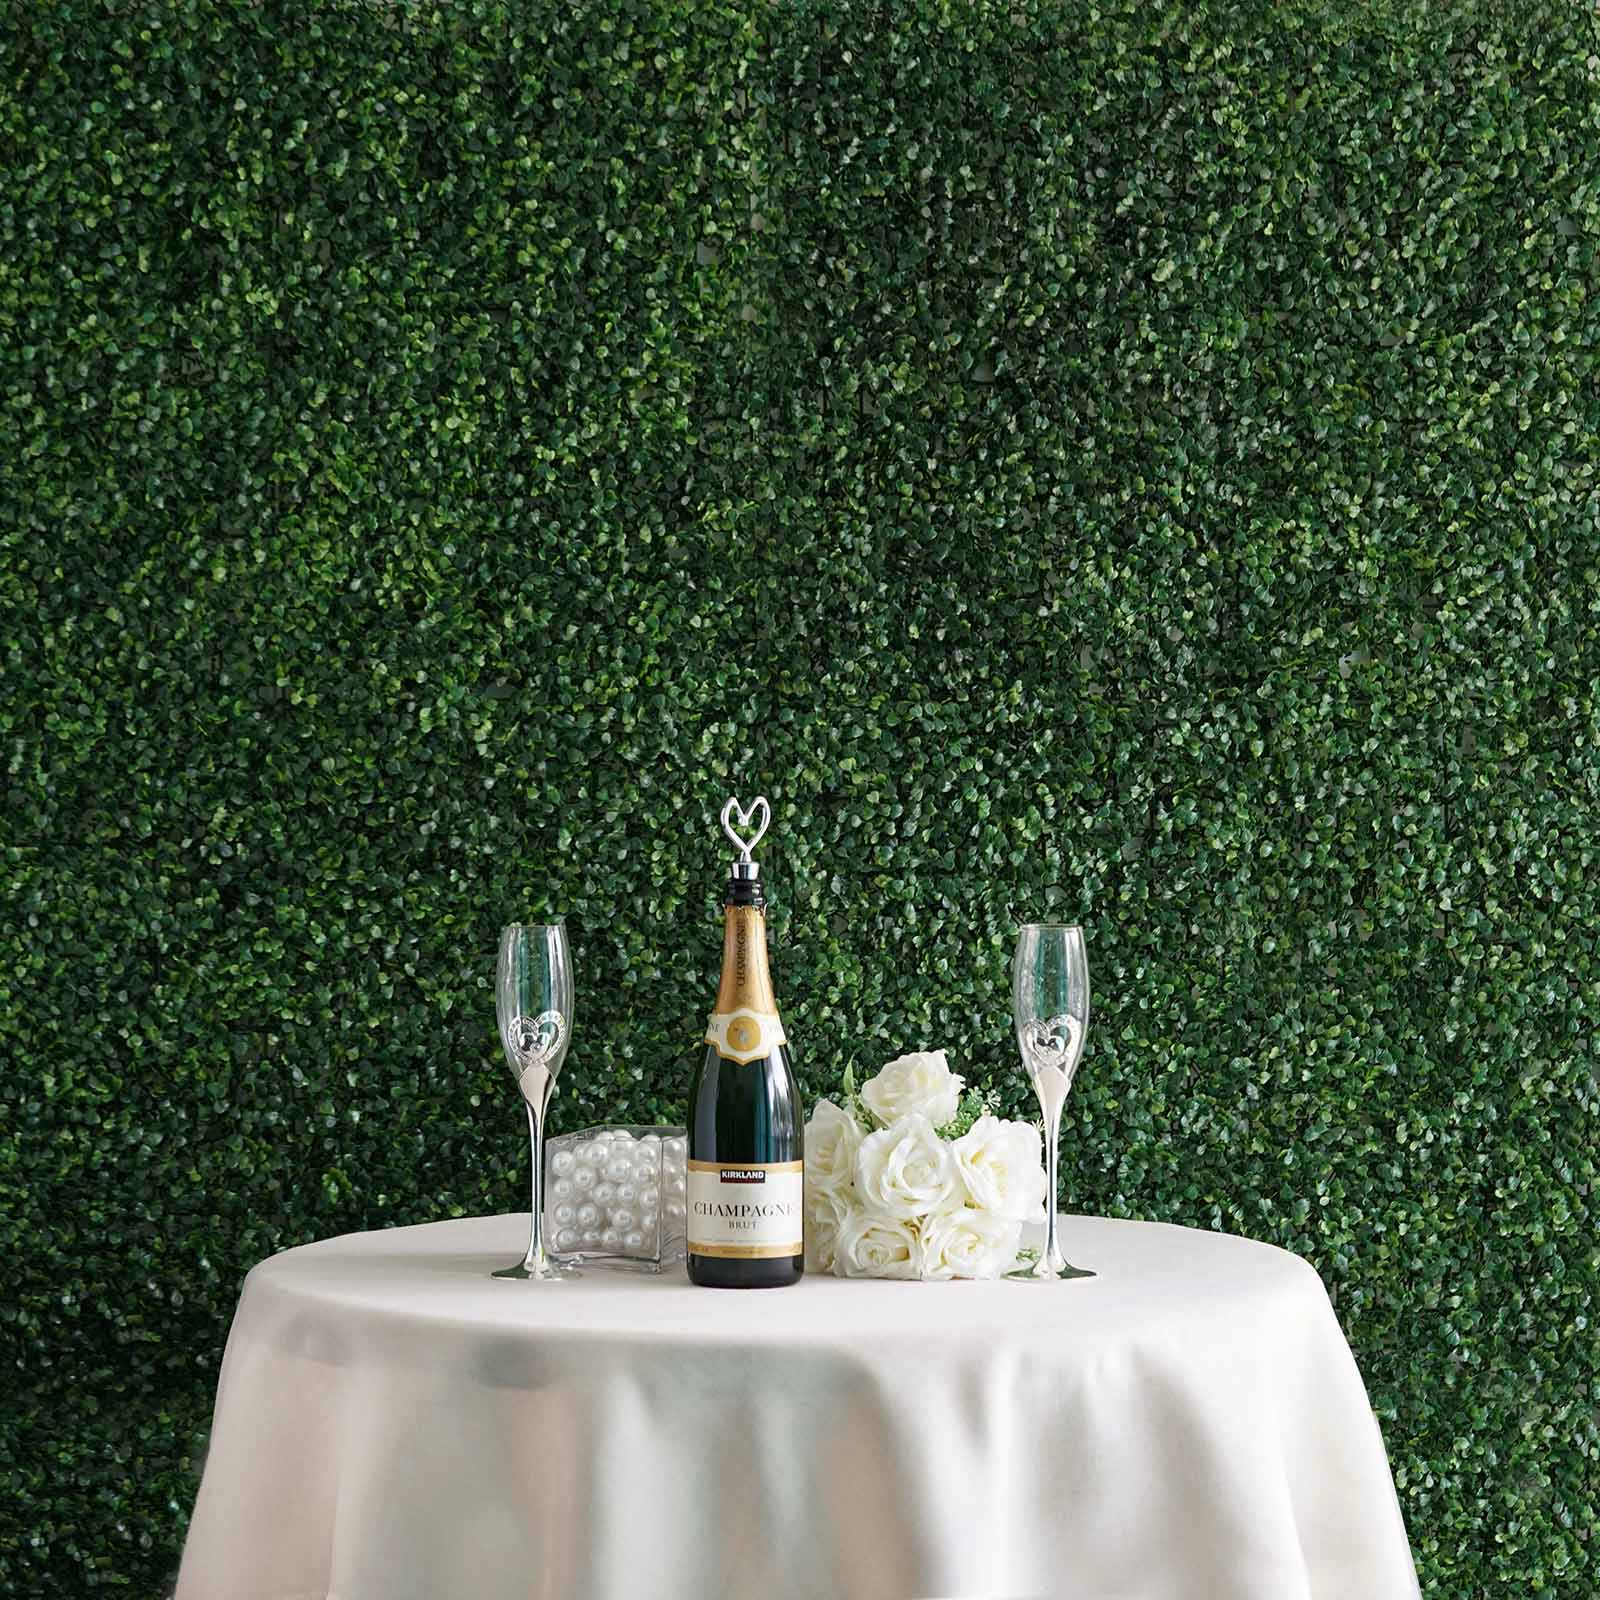 11 Sq Ft 4 Panels Artificial Boxwood Hedge Small Leaves Faux